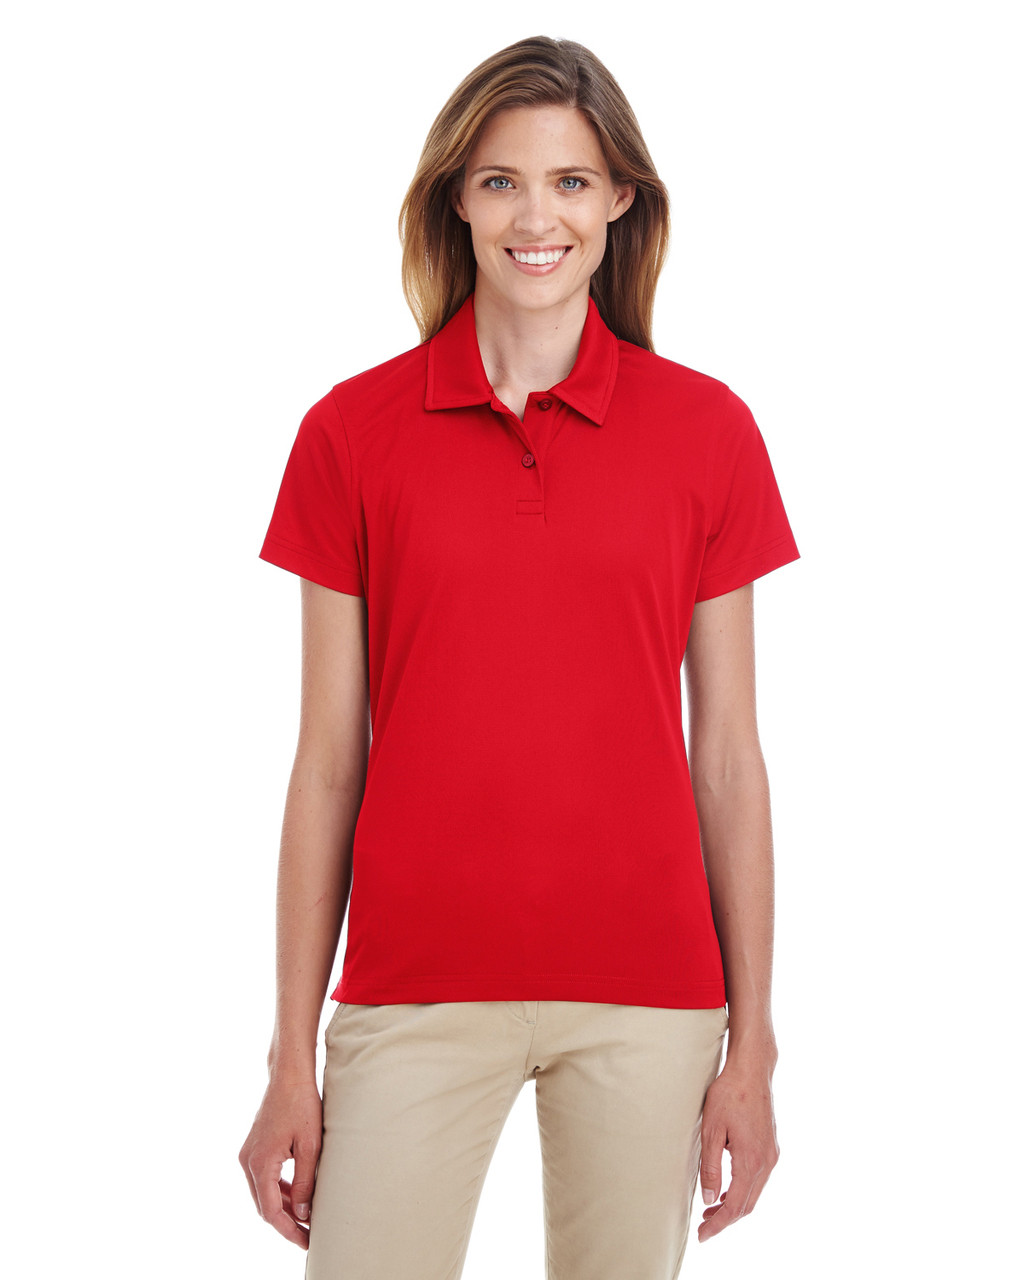 Sport Red - TT21W Team 365 Ladies' Command Snag Protection Polo Shirt